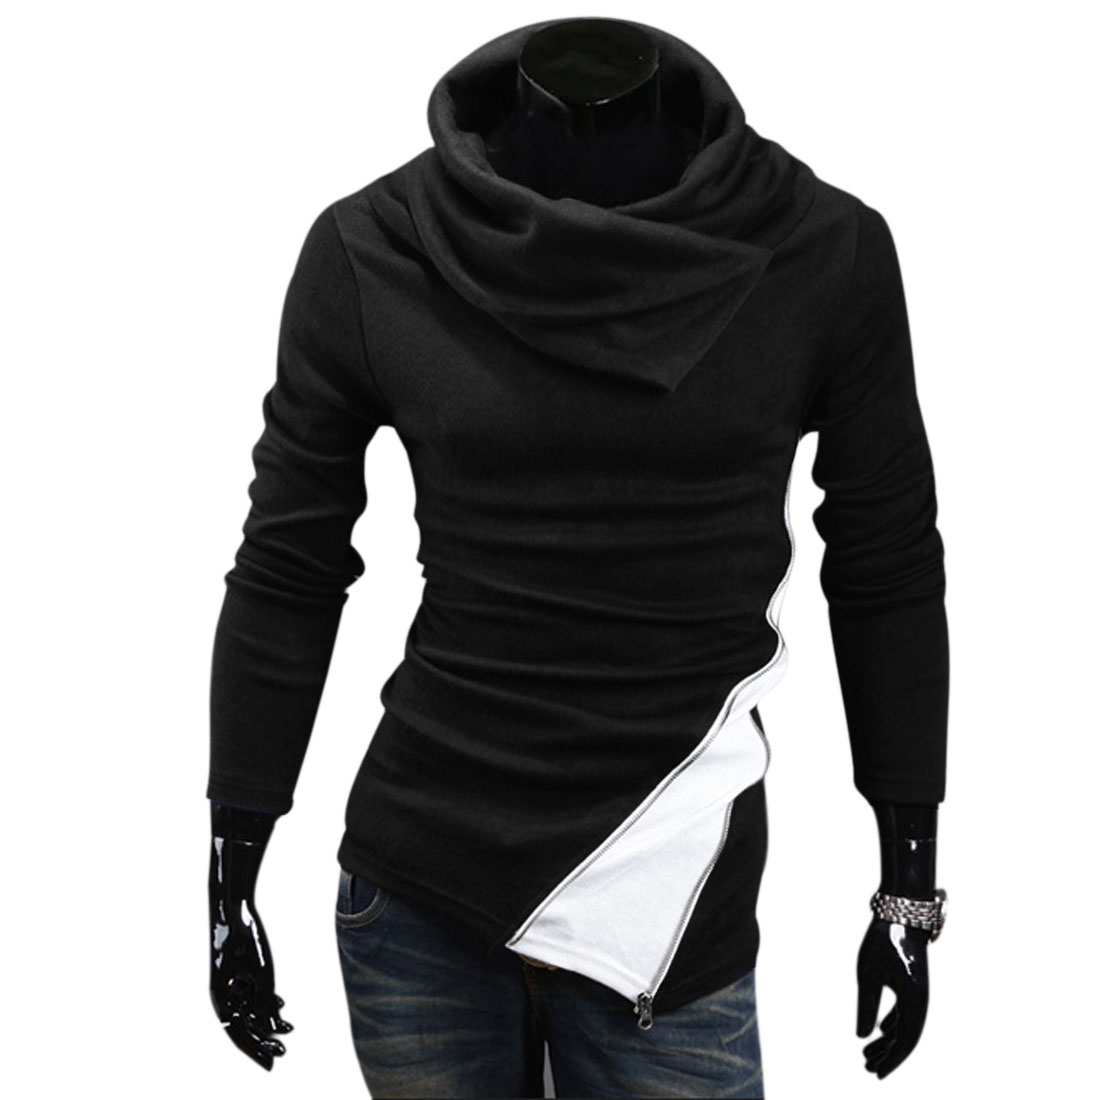 Men Cowl Neck Pullover Slant Zipper Decor Knit Top Black M